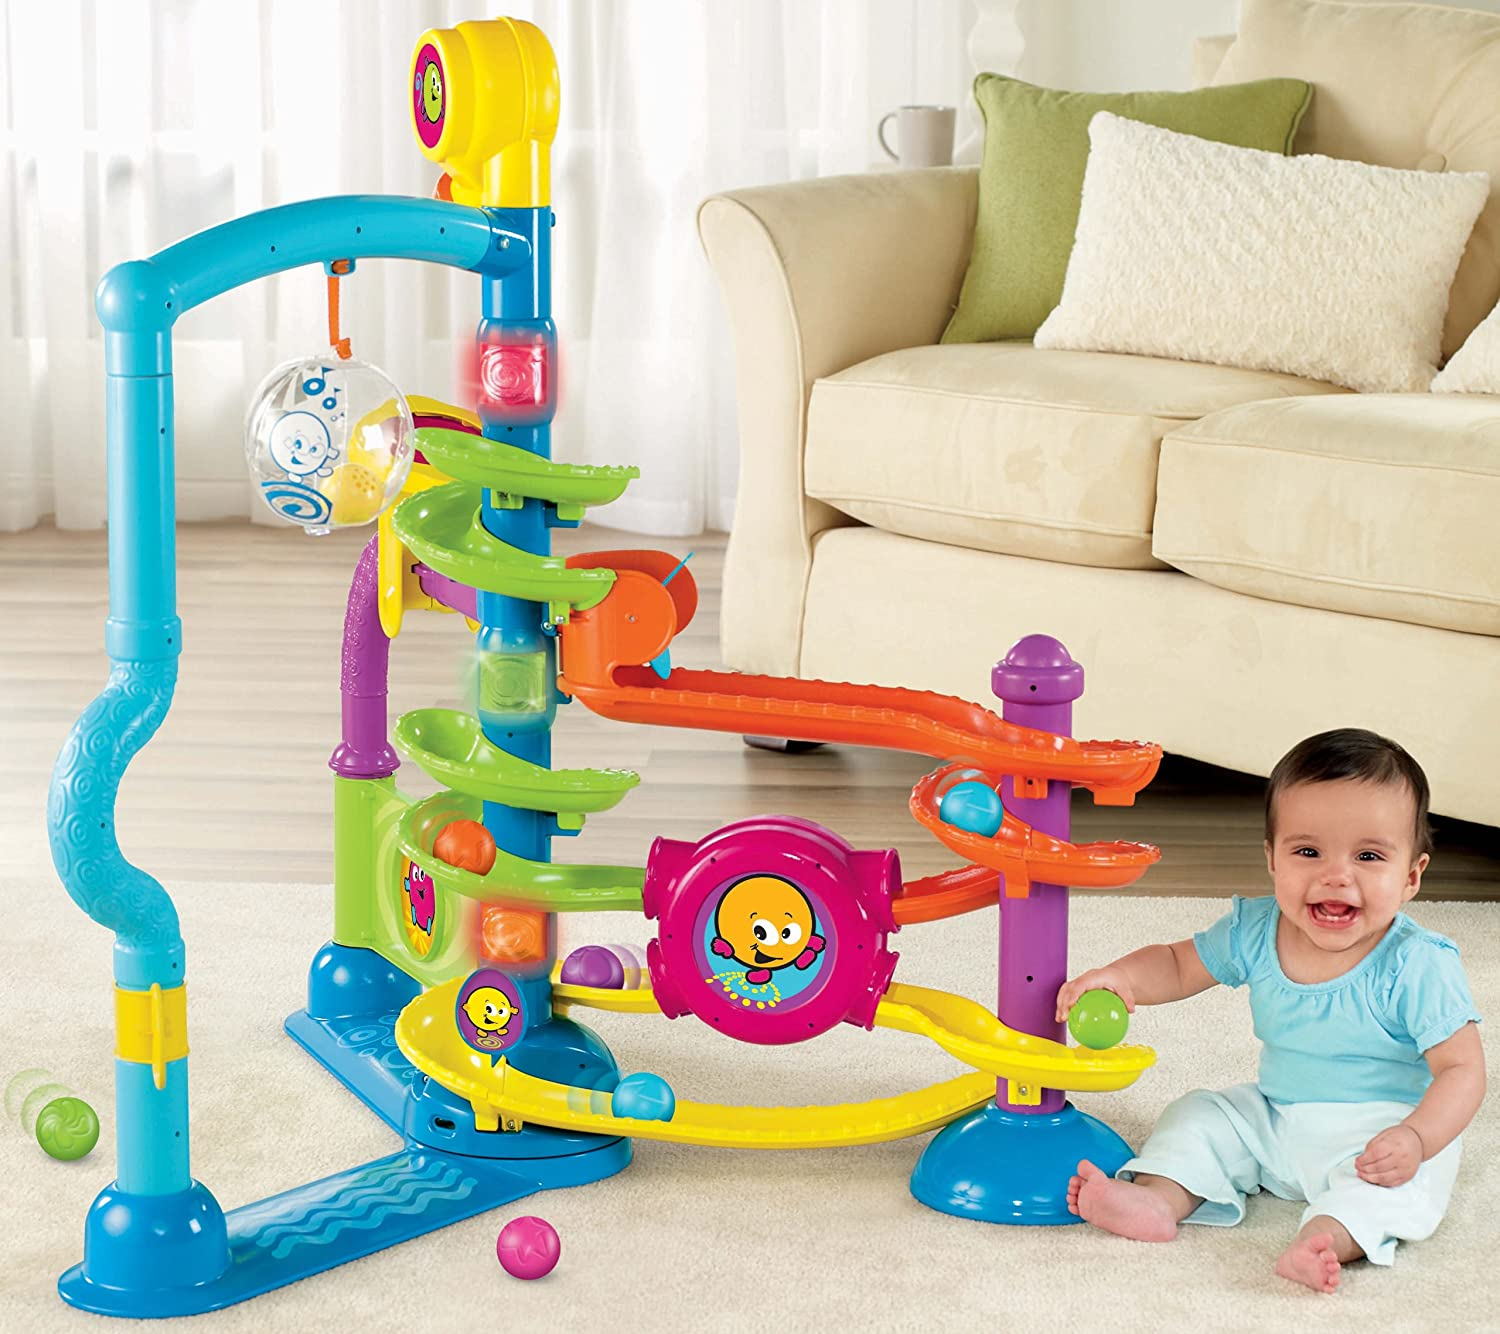 Amazon Fisher Price Cruise and Groove Ballapalooza Toys & Games